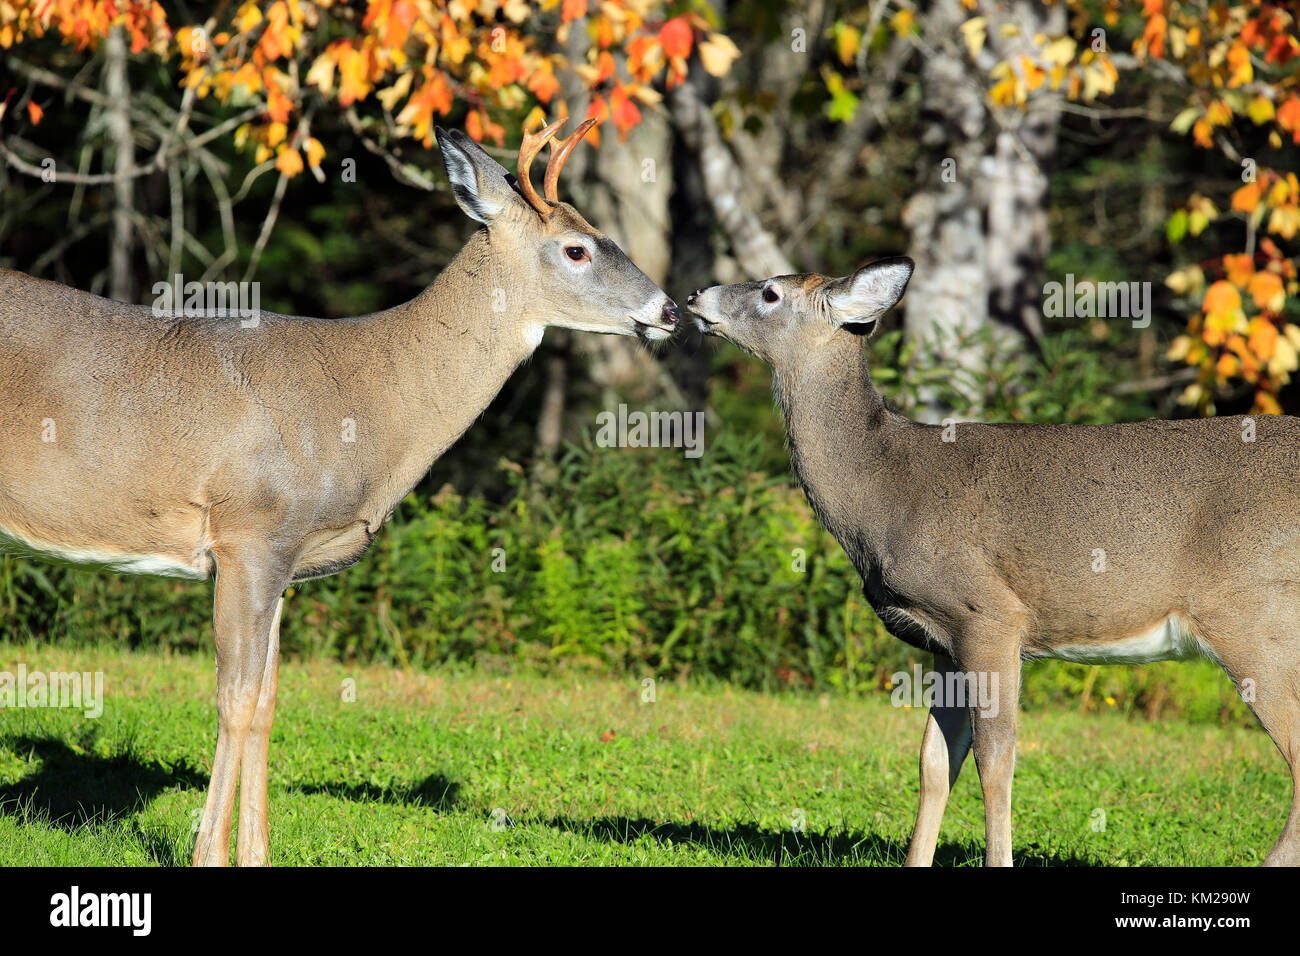 Love in the wild with Deer - Stock Image